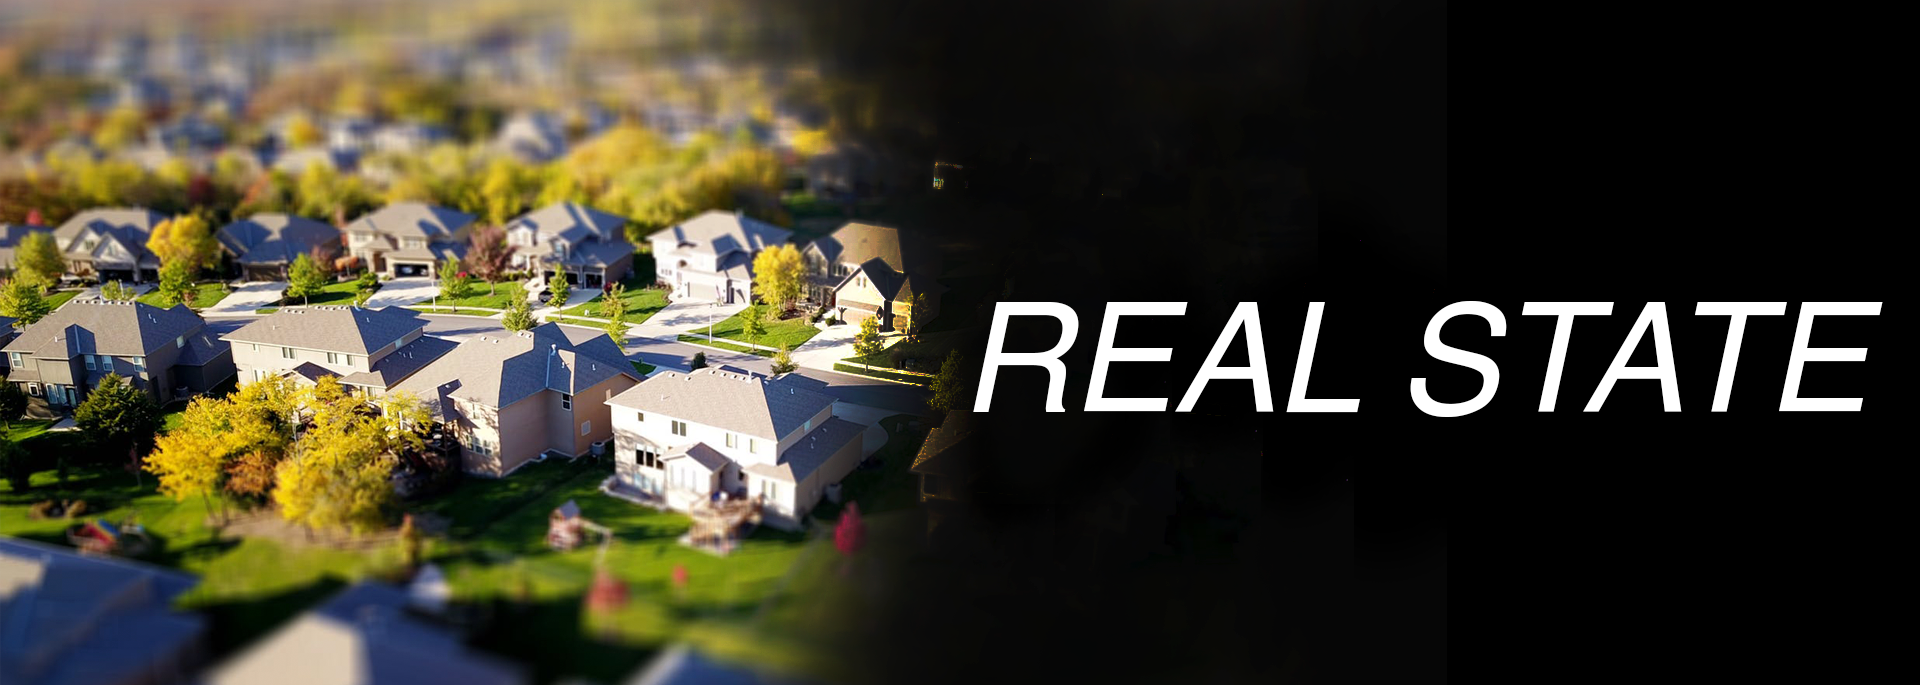 REAL ESTATE category